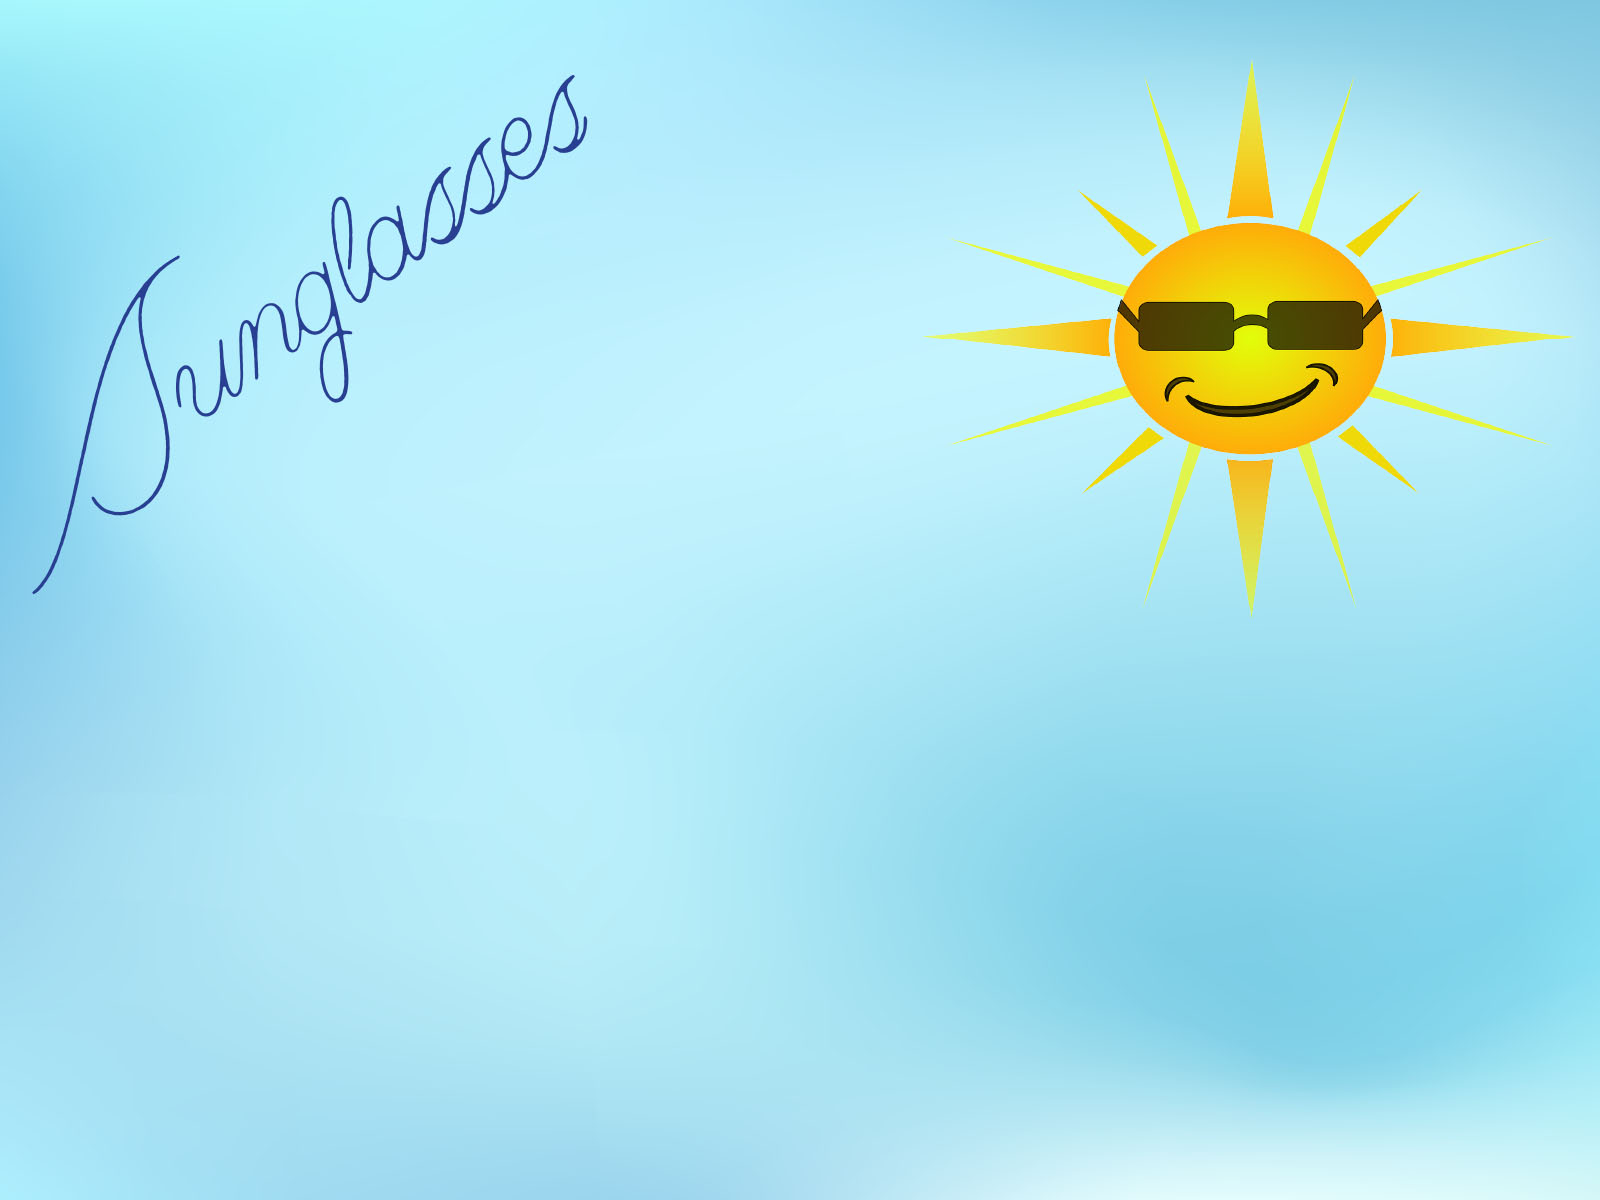 Cute Sunglasses Backgrounds | Black, Blue, Design, Yellow Templates | Free PPT Grounds and ...